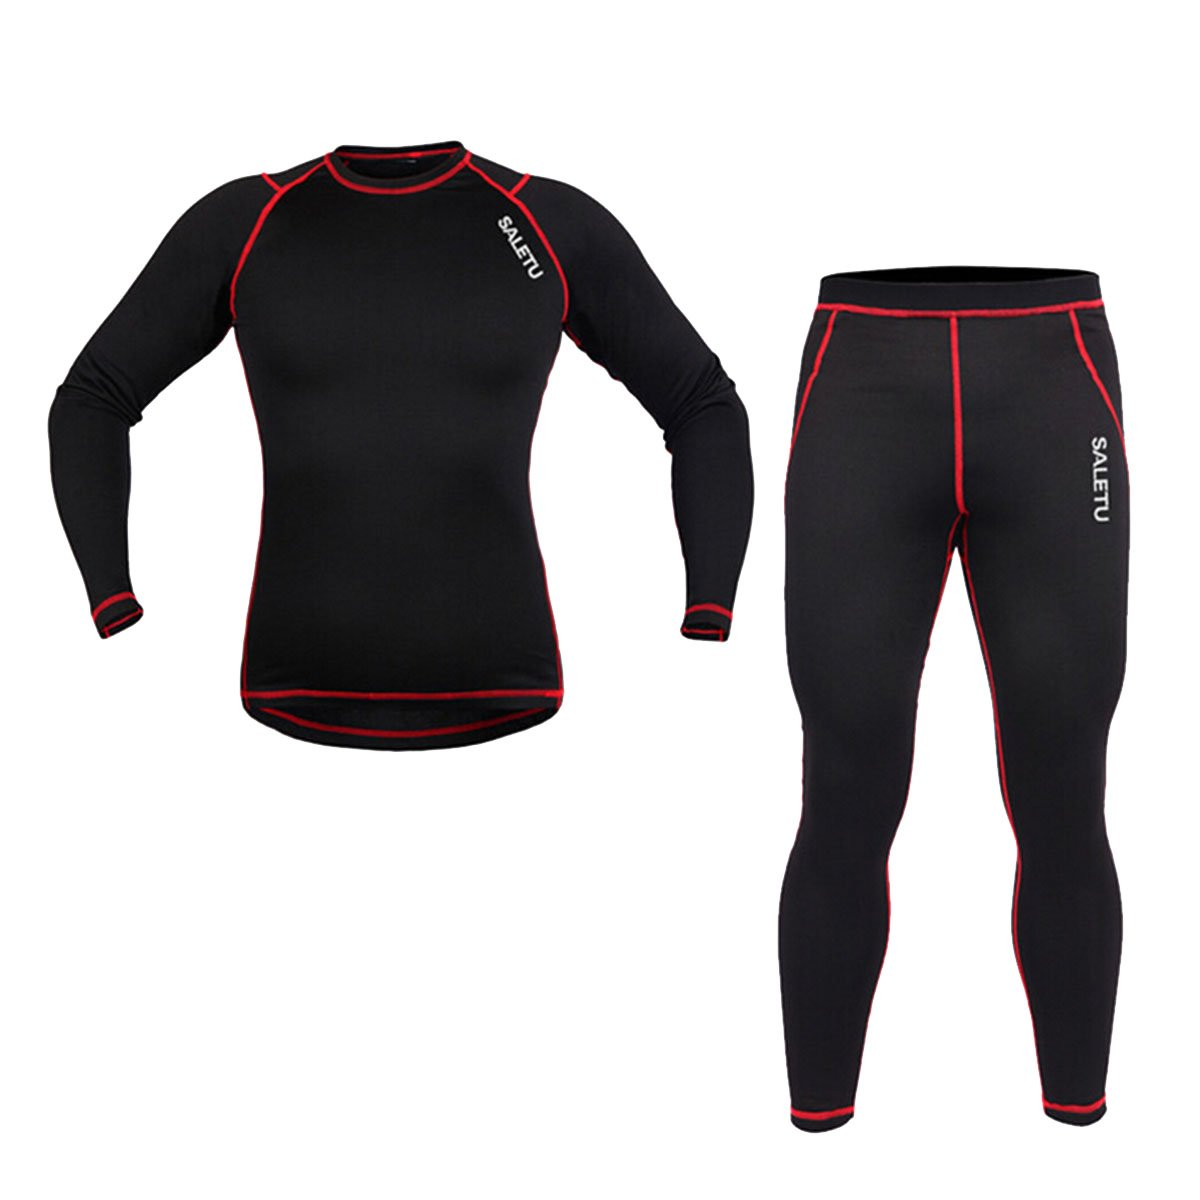 Latinaric Winter Sport Herren Warm Unterwäsche Thermounterwäsche Funktionsunterwäsche Set